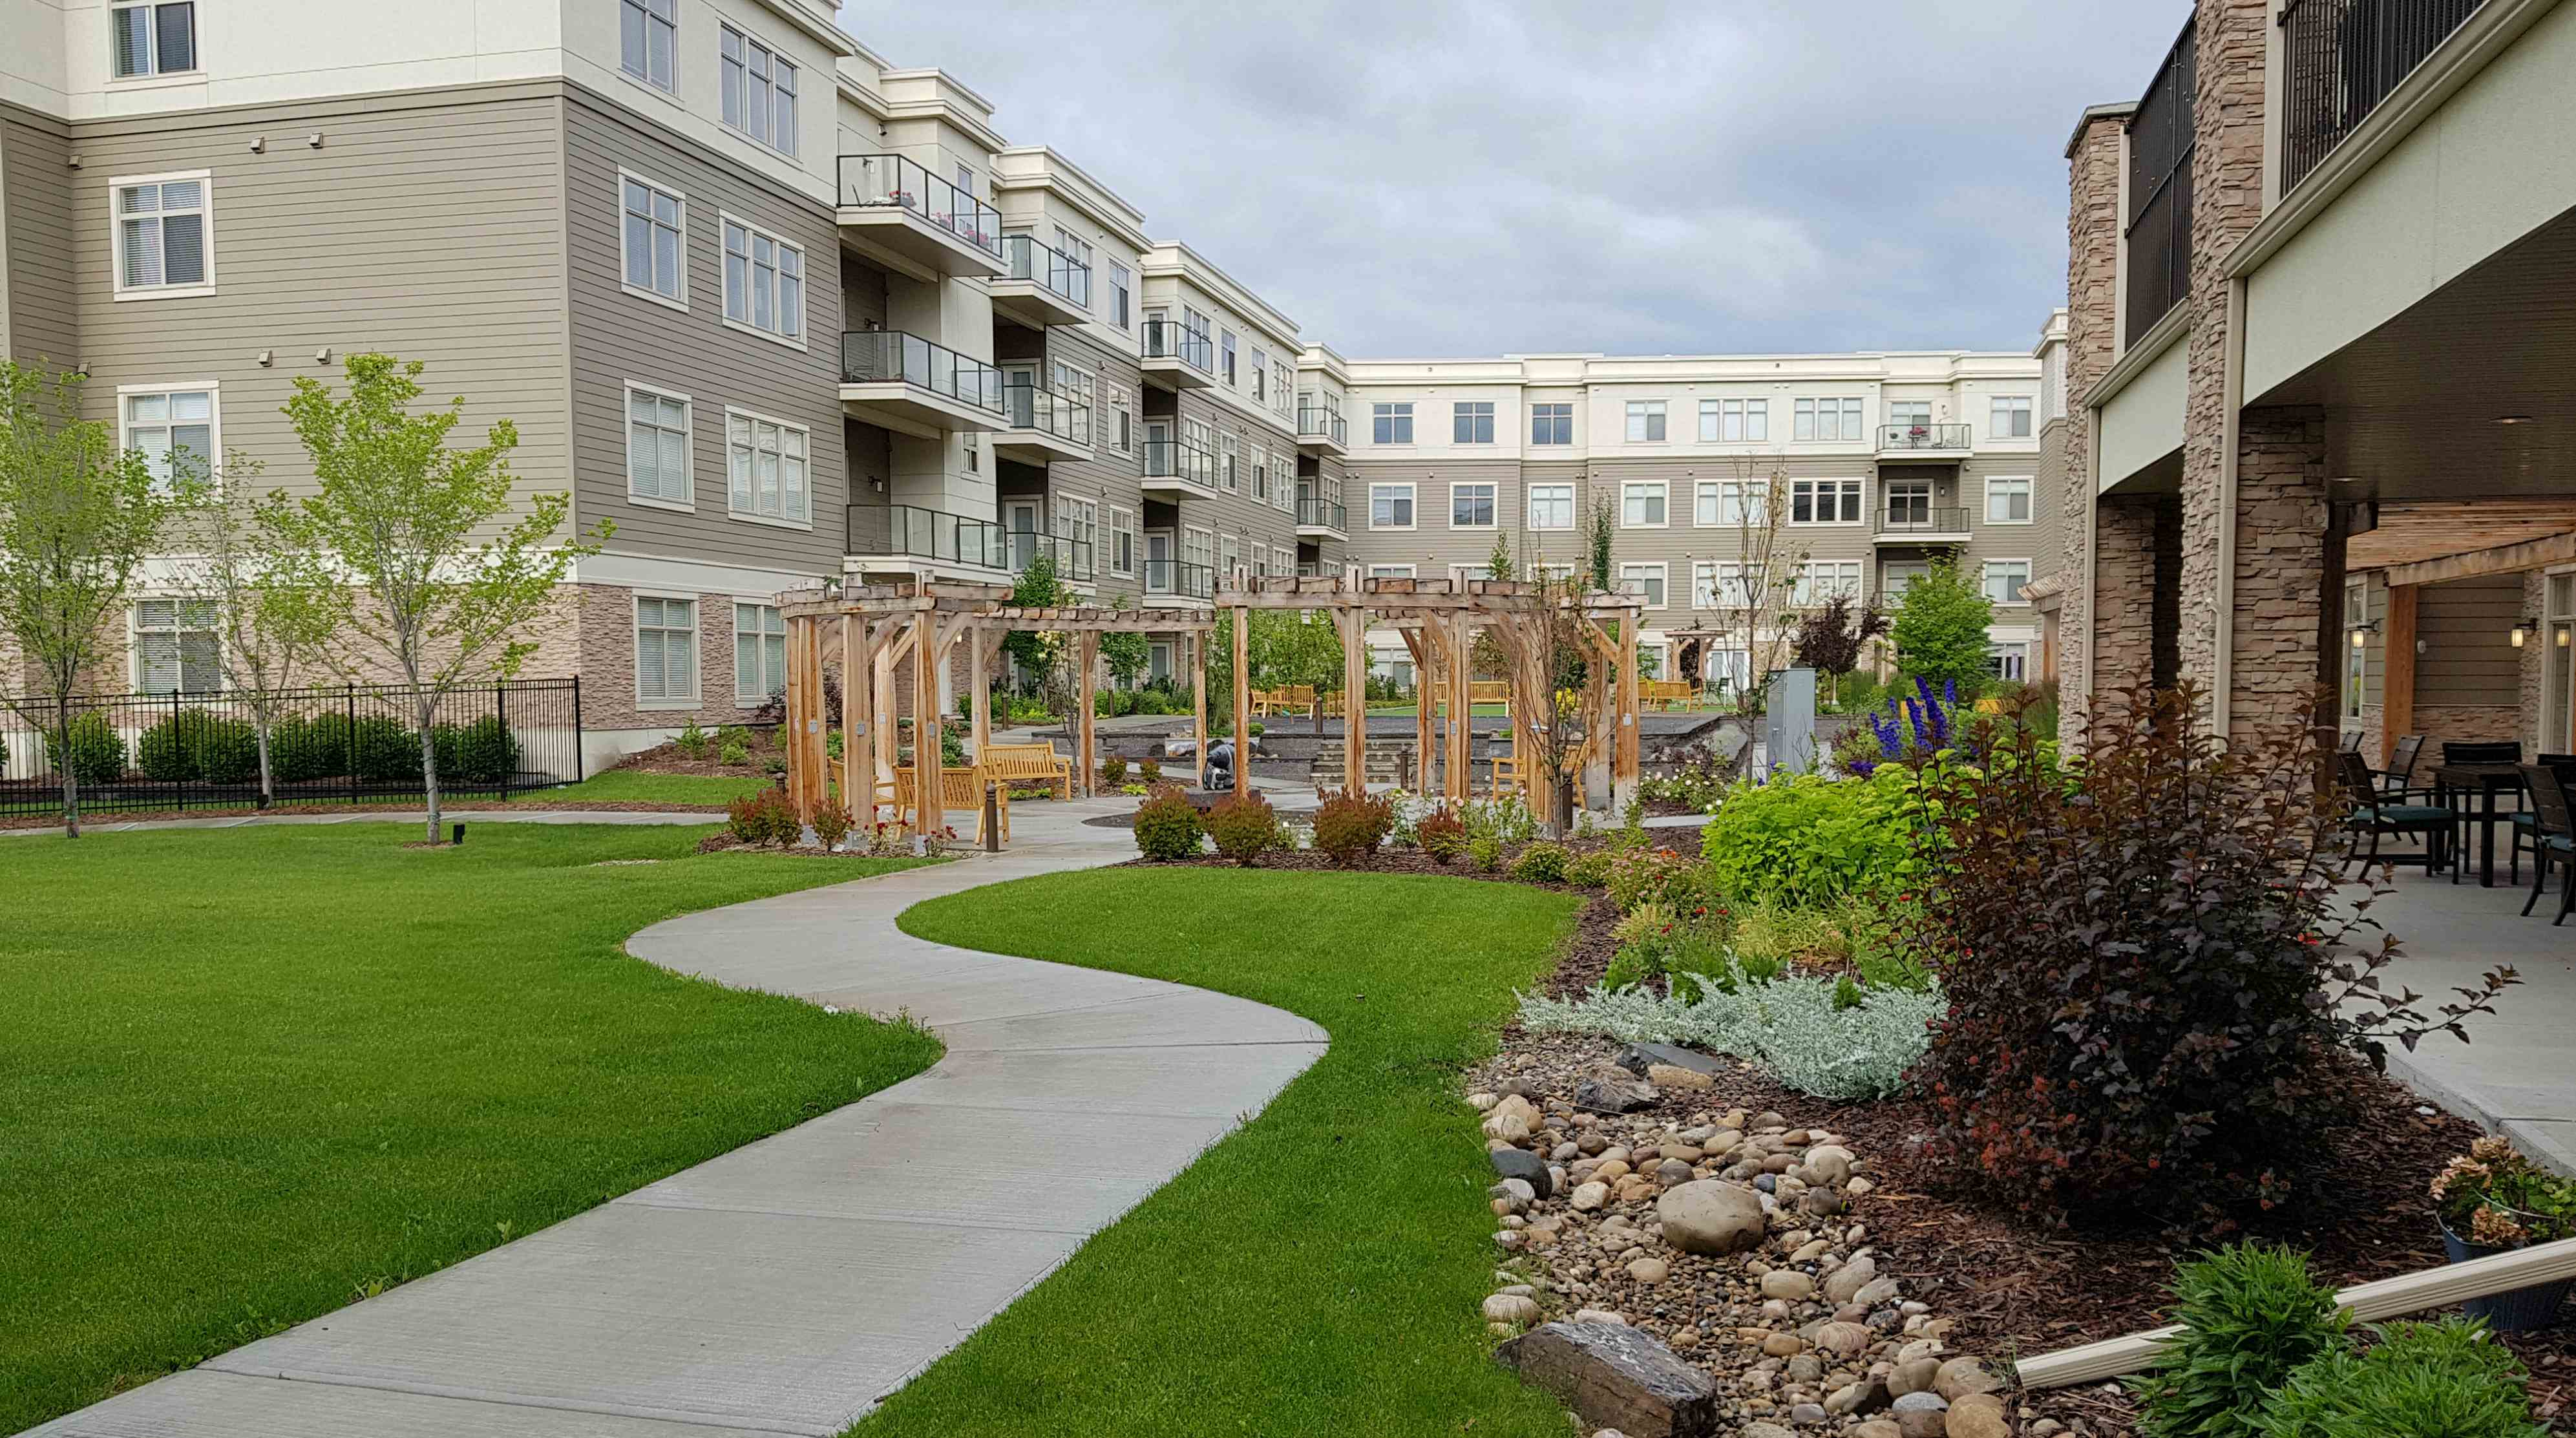 The Fish Creek courtyard with bocce ball court, putting green and sitting areas